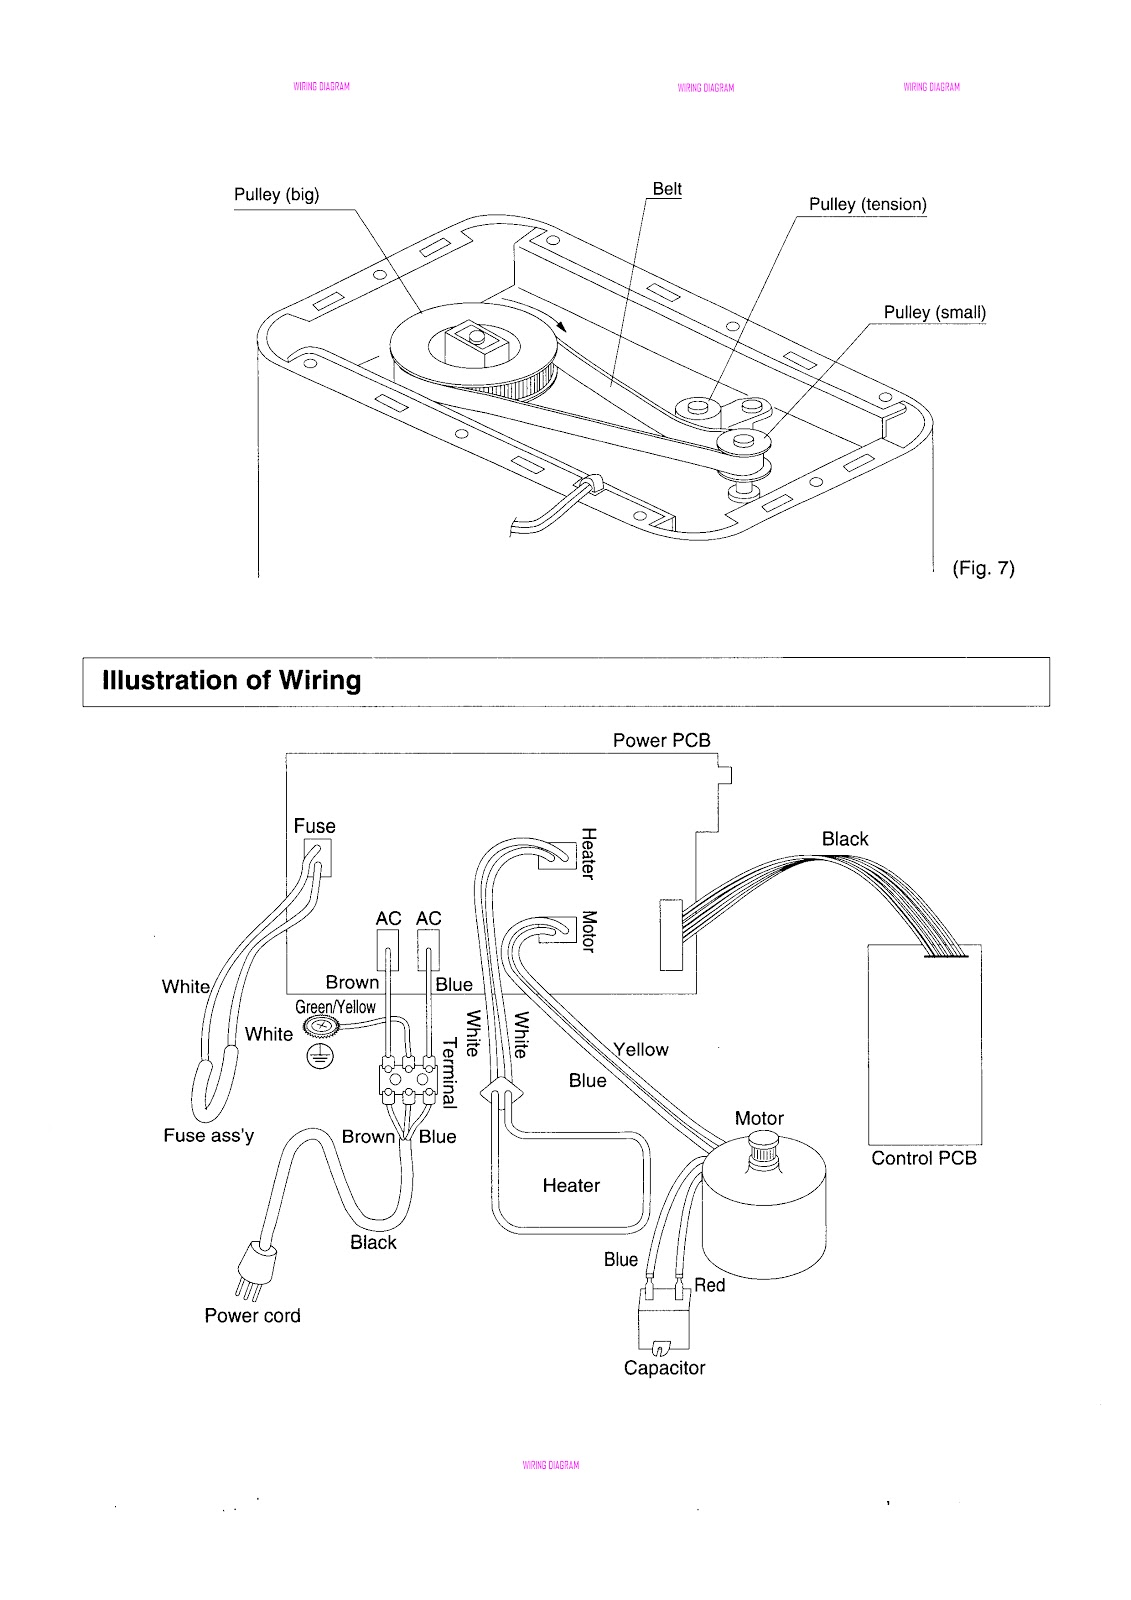 1996 Subaru Legacy Bg5 Ecu Wiring Diagram as well Sony Camera Wire Diagram likewise Ice Maker In Refrigerator Wiring Diagram likewise Practice Electrical Wiring Diagrams in addition Coloring Page Generator. on free online wiring diagram maker